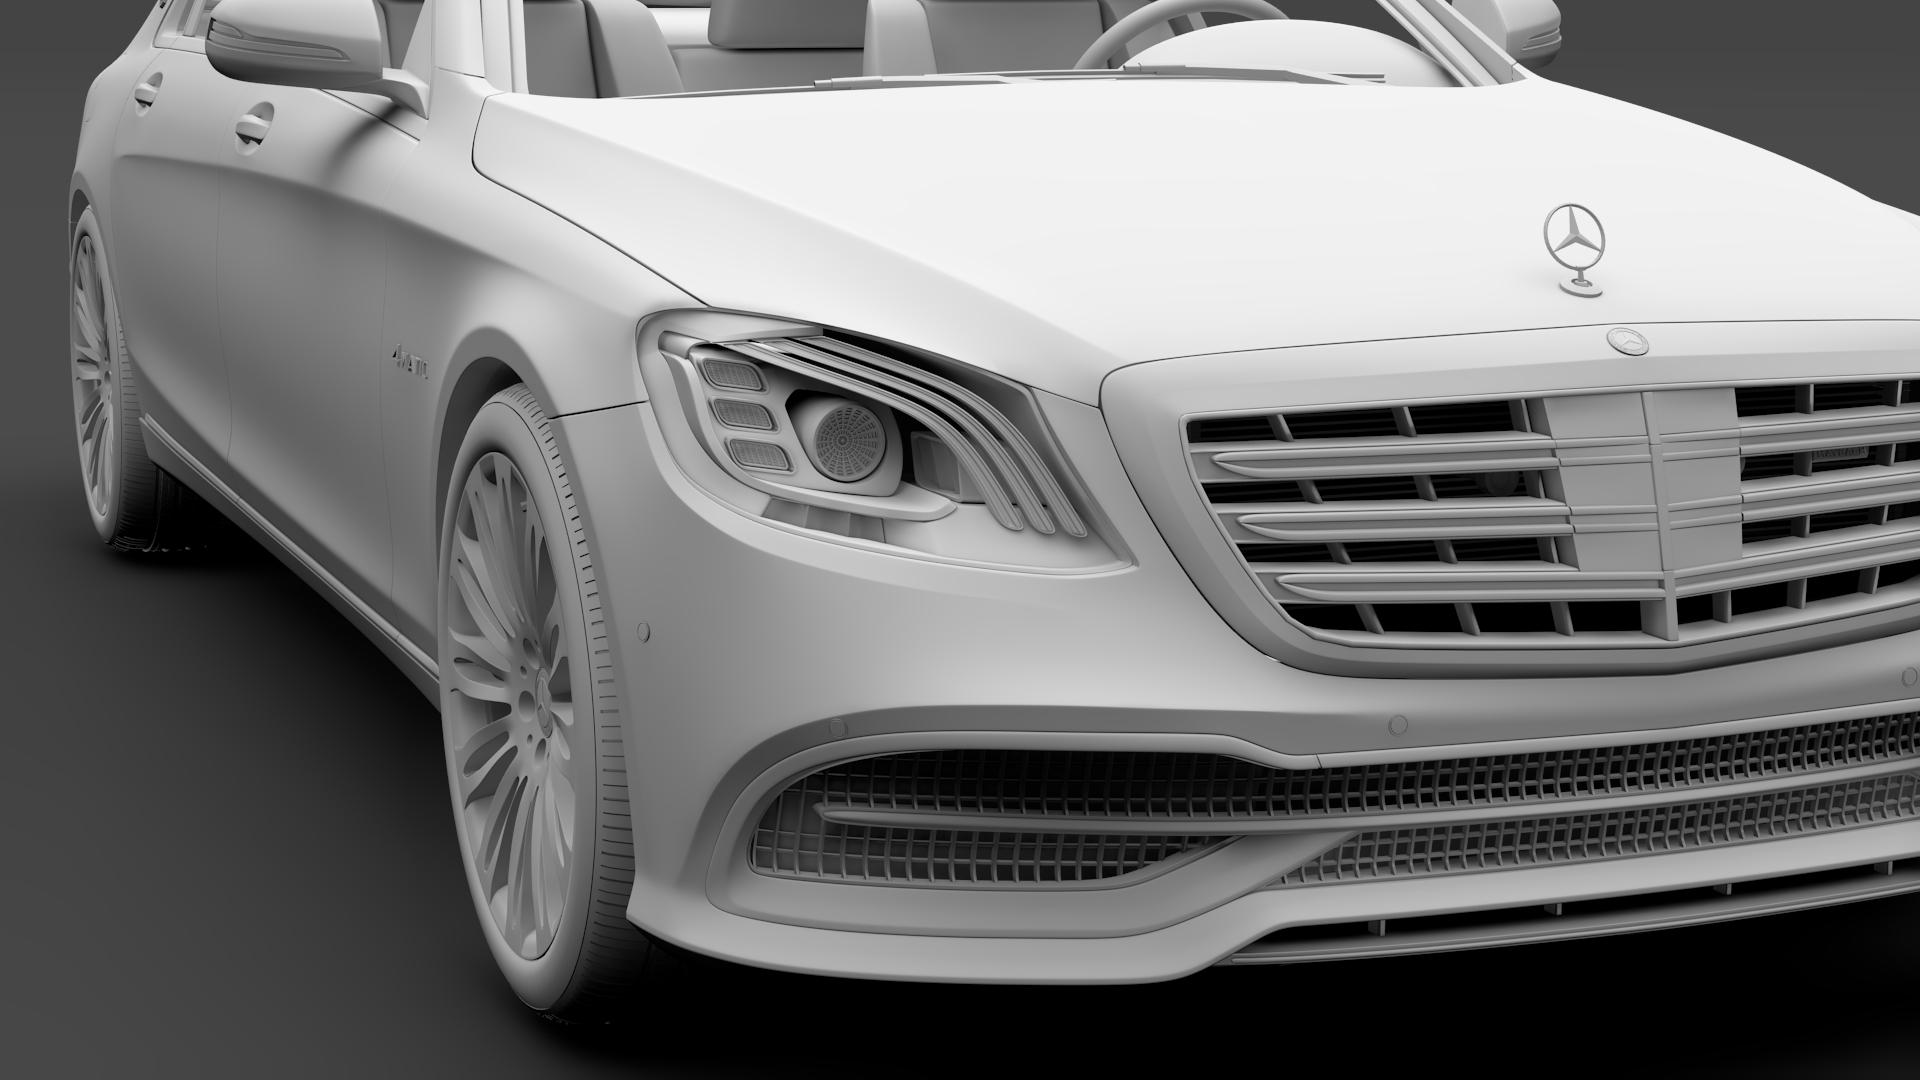 mercedes maybach s 560 4matic x222 2018 3d model 3ds max fbx c4d lwo ma mb hrc xsi obj 284440